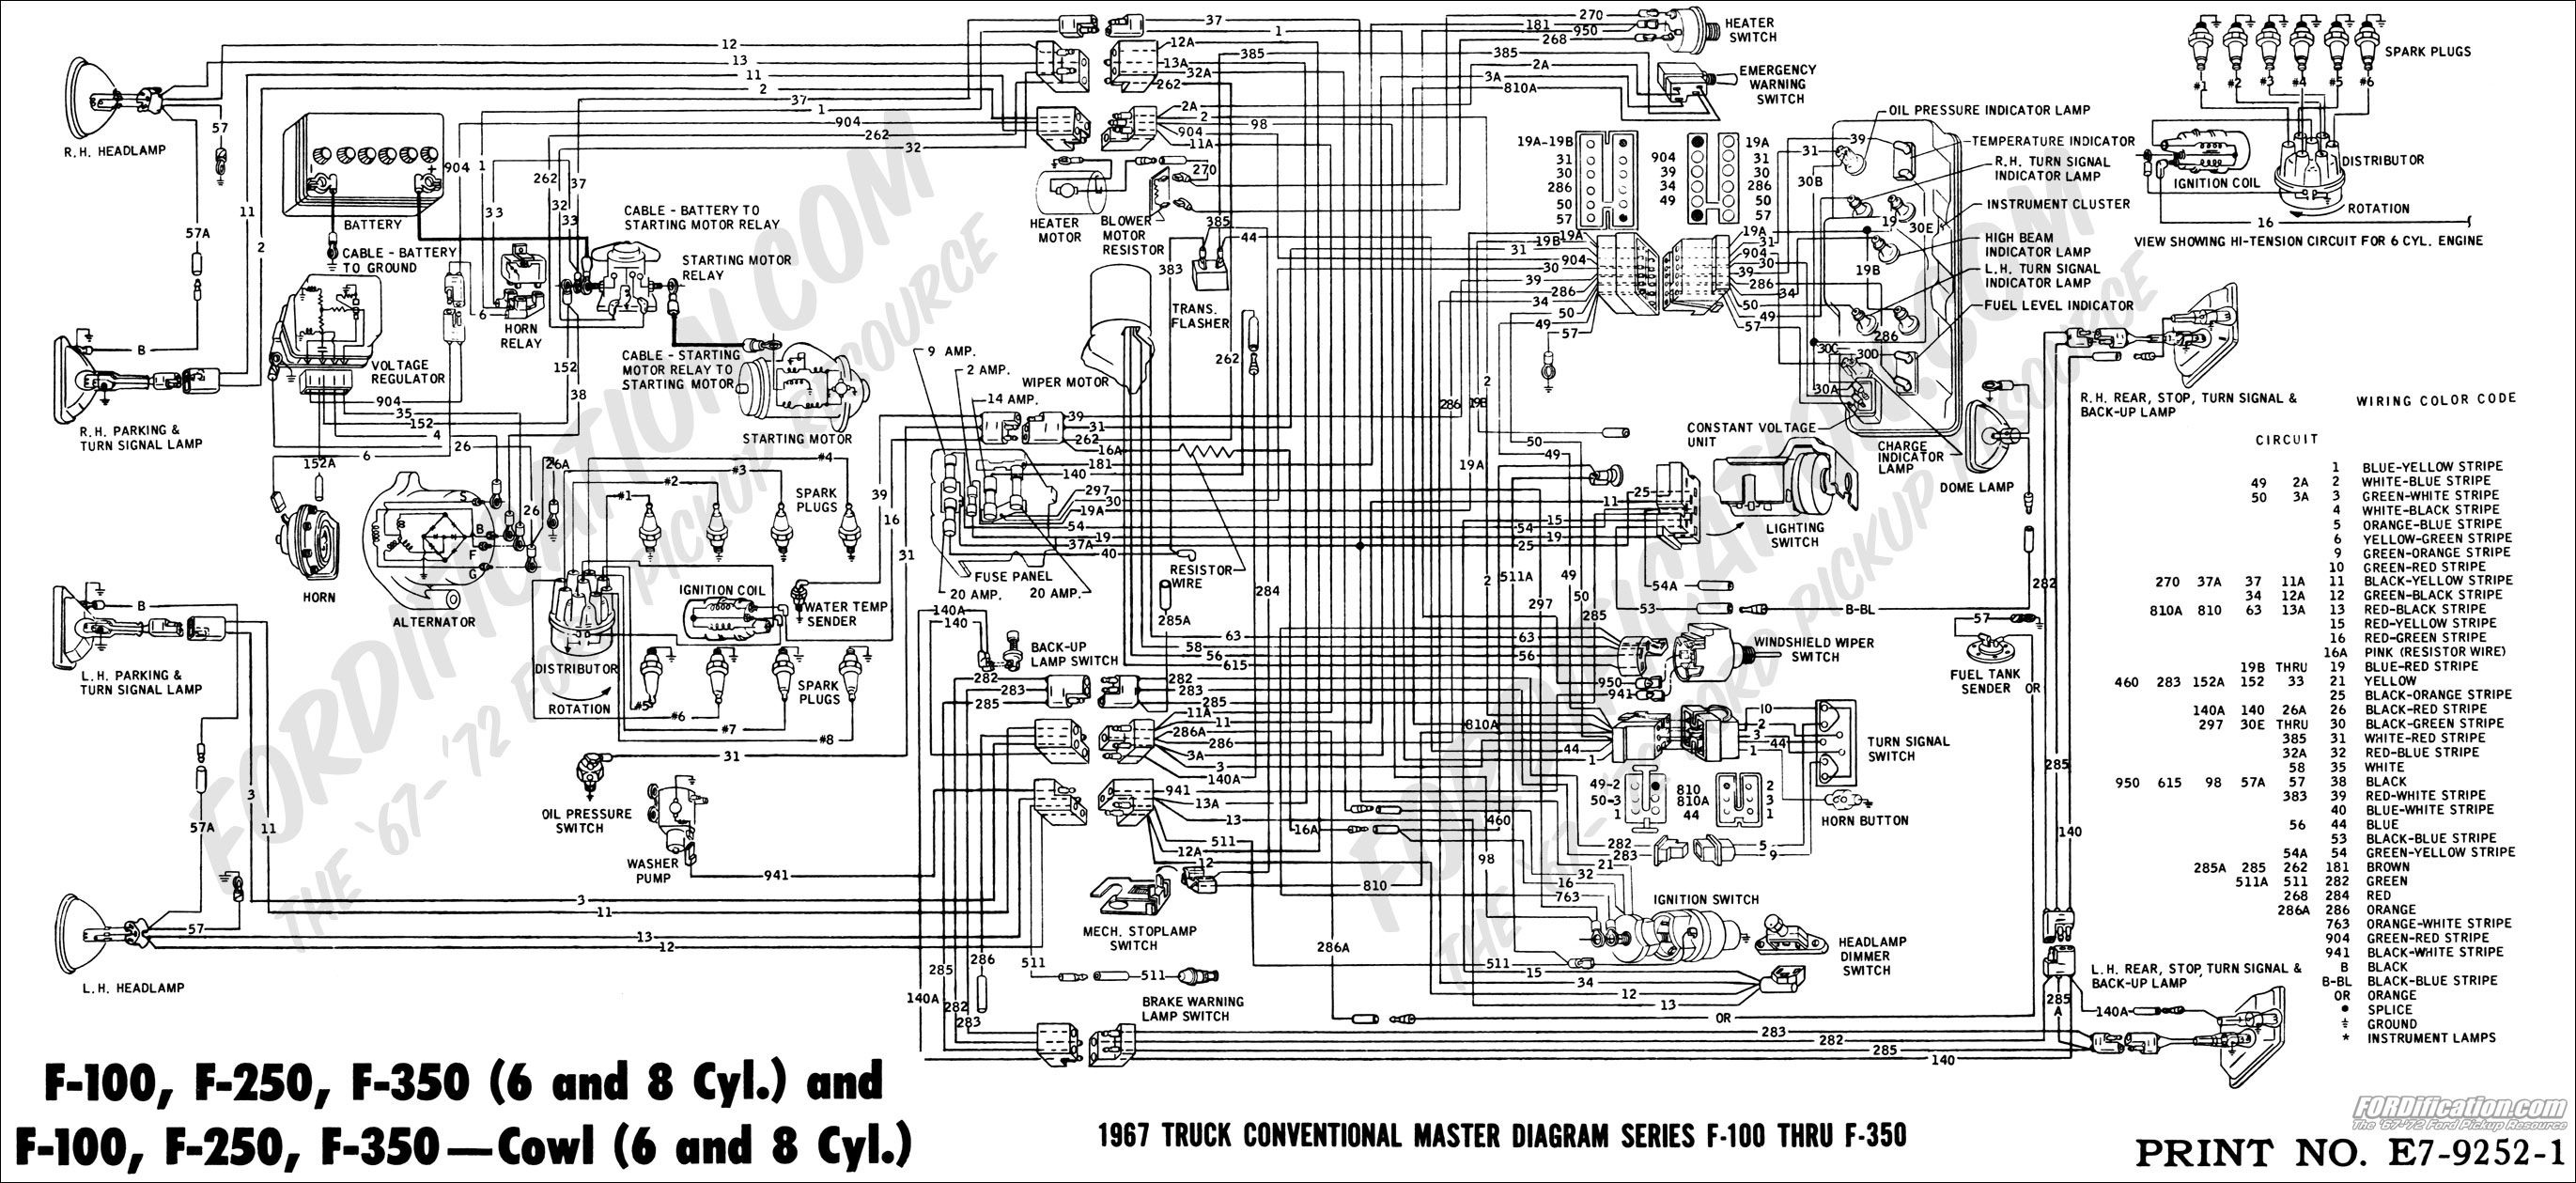 67masterdiagram wiring diagrams ford 2014 f150 readingrat net 2013 ford wiring diagram at crackthecode.co